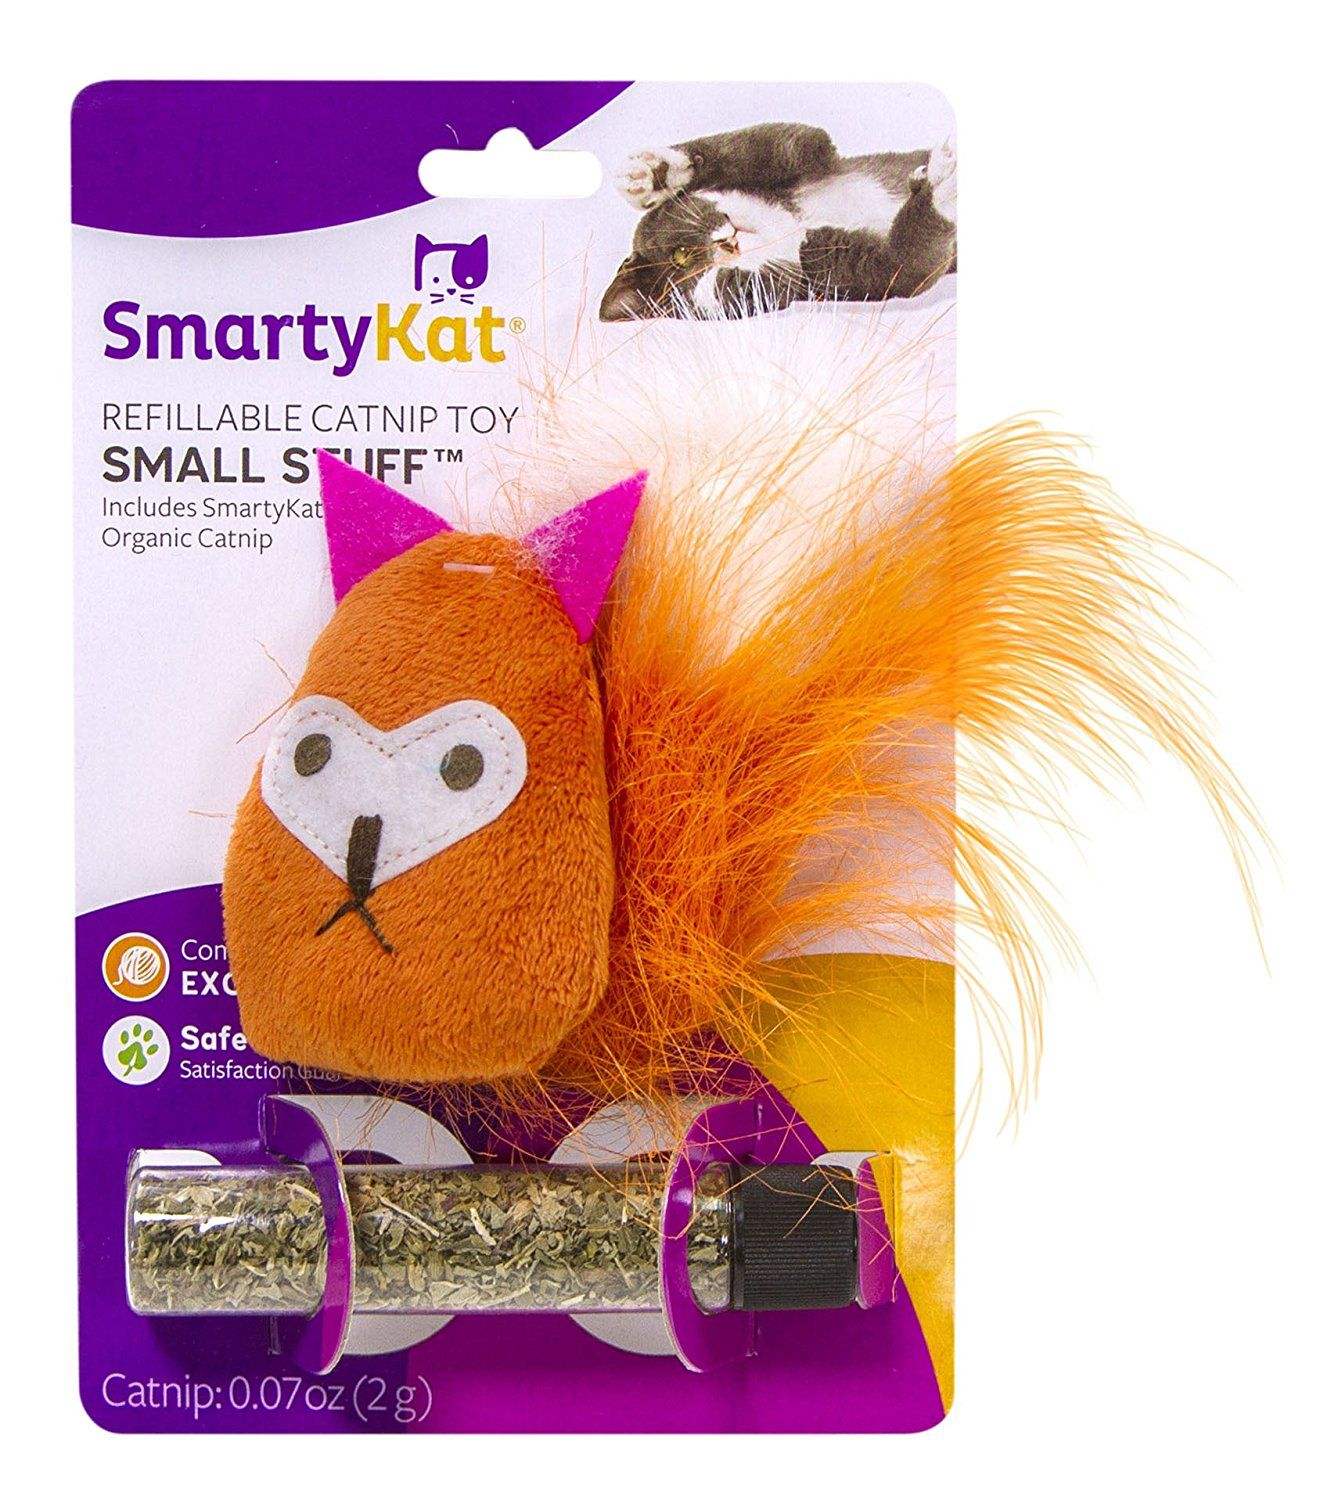 SmartyKat Small Stuff Refillable Catnip Toy with Tube